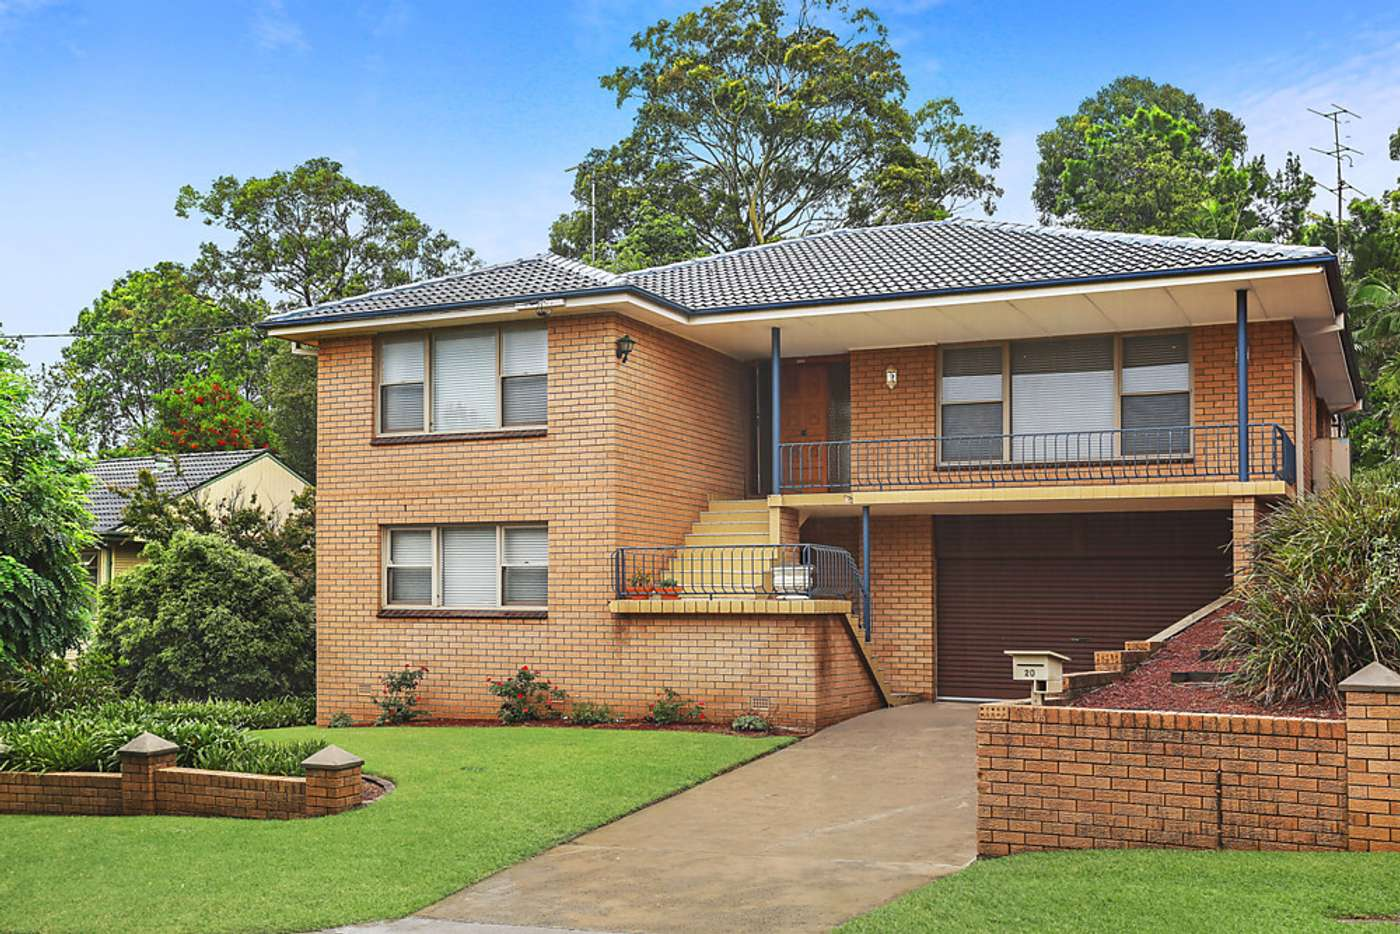 Main view of Homely house listing, 20 Georgina Avenue, Keiraville NSW 2500